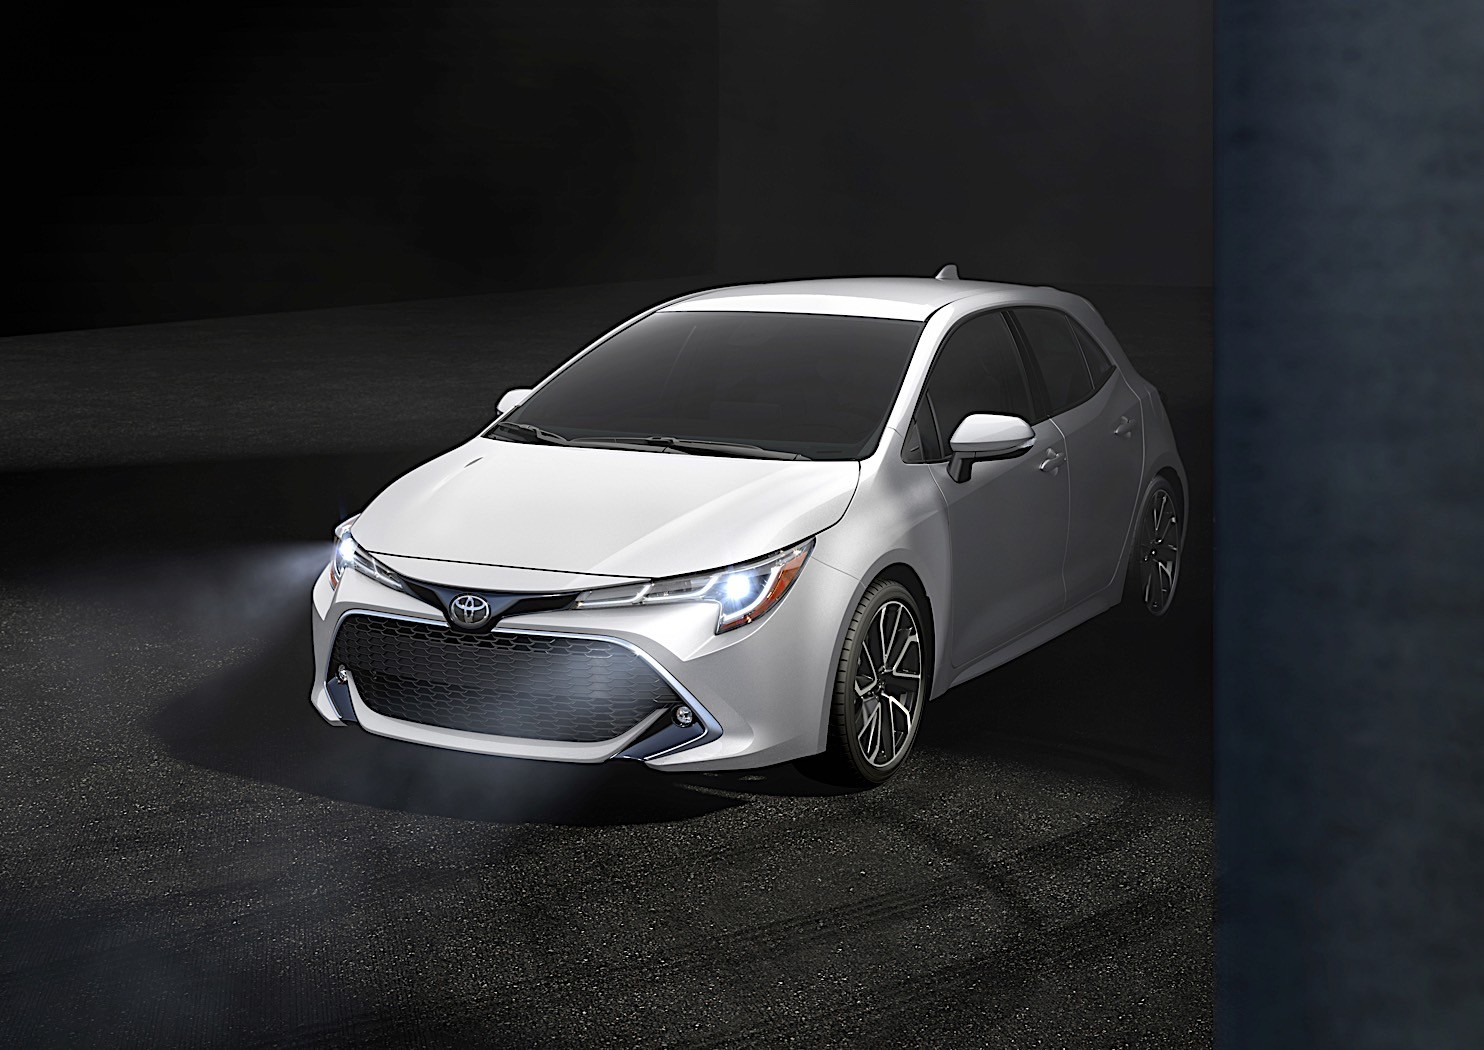 2019 Toyota Corolla Gr Hot Hatchback Is Under Consideration